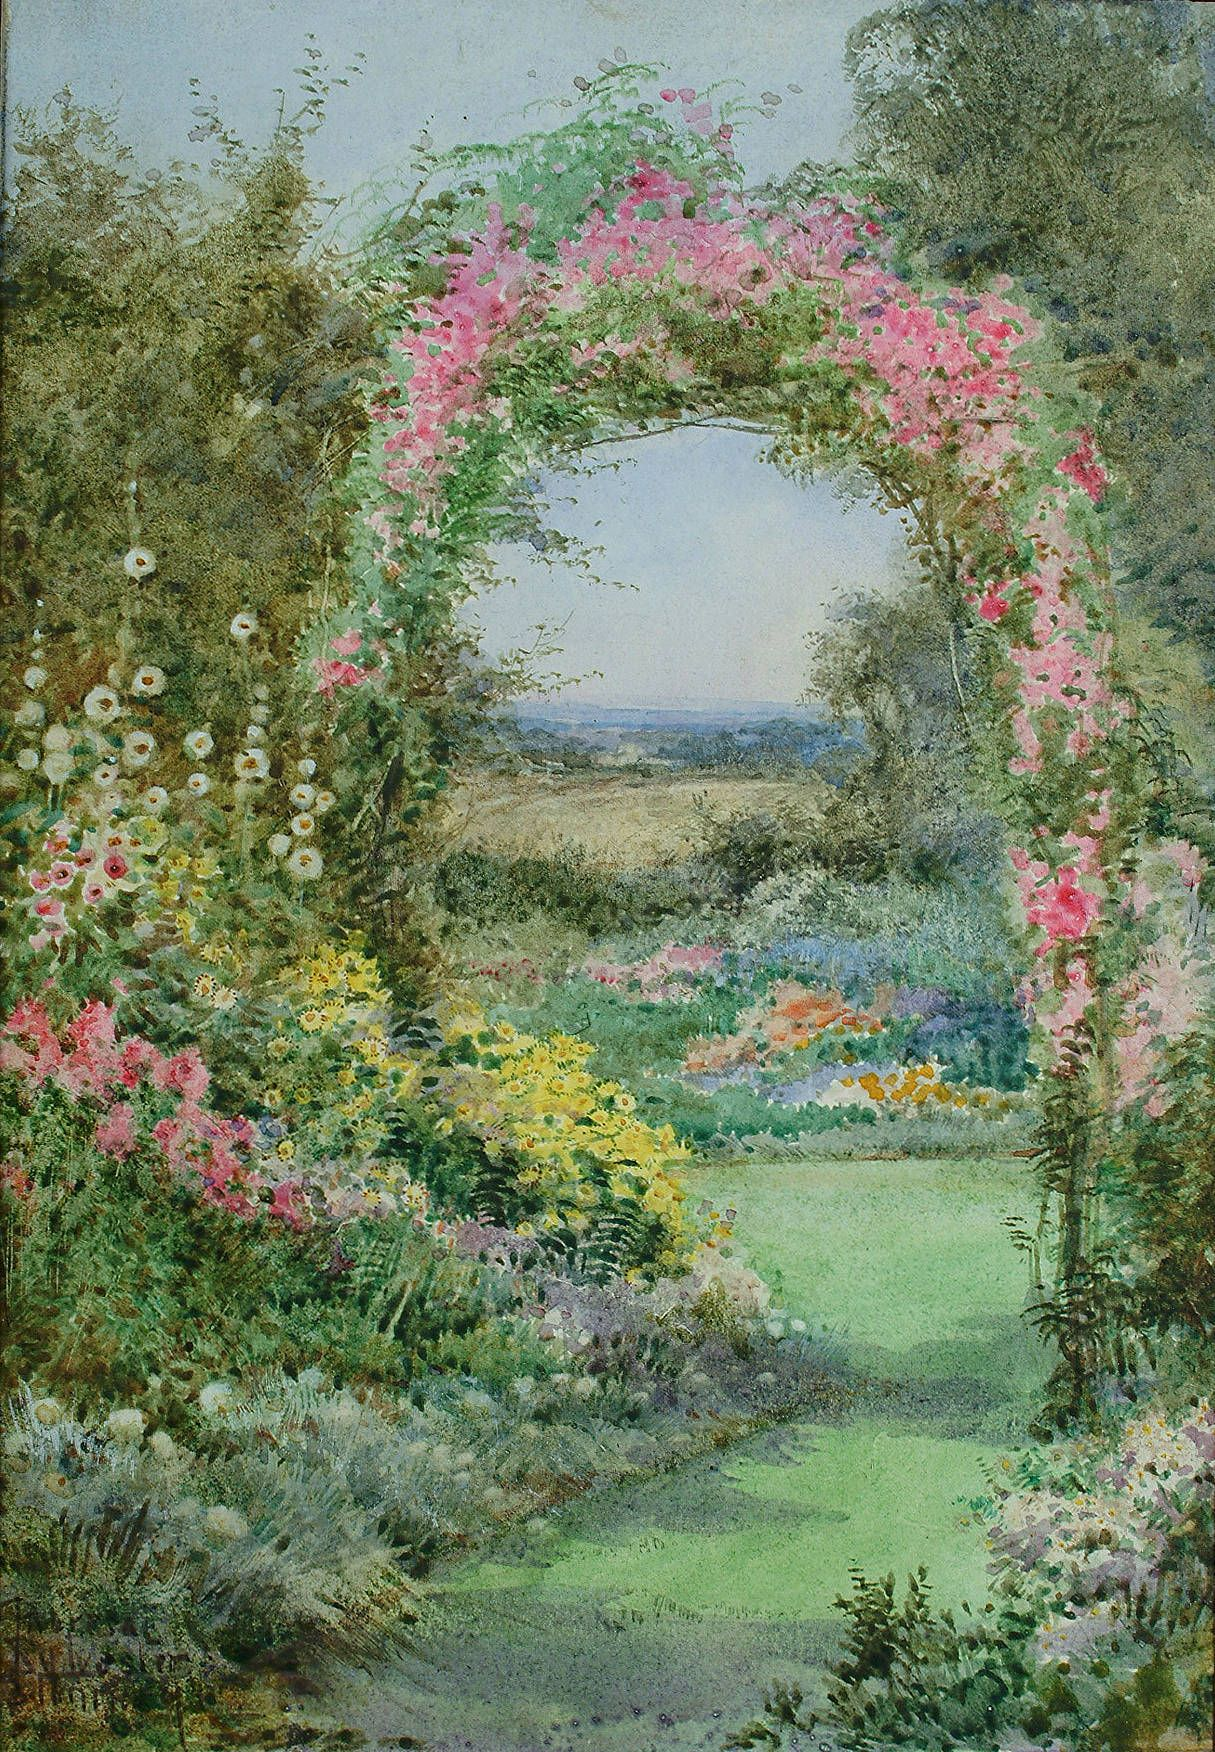 English country garden paintings - Theresa Sylvester Stannard Dream Gardengarden Artenglish